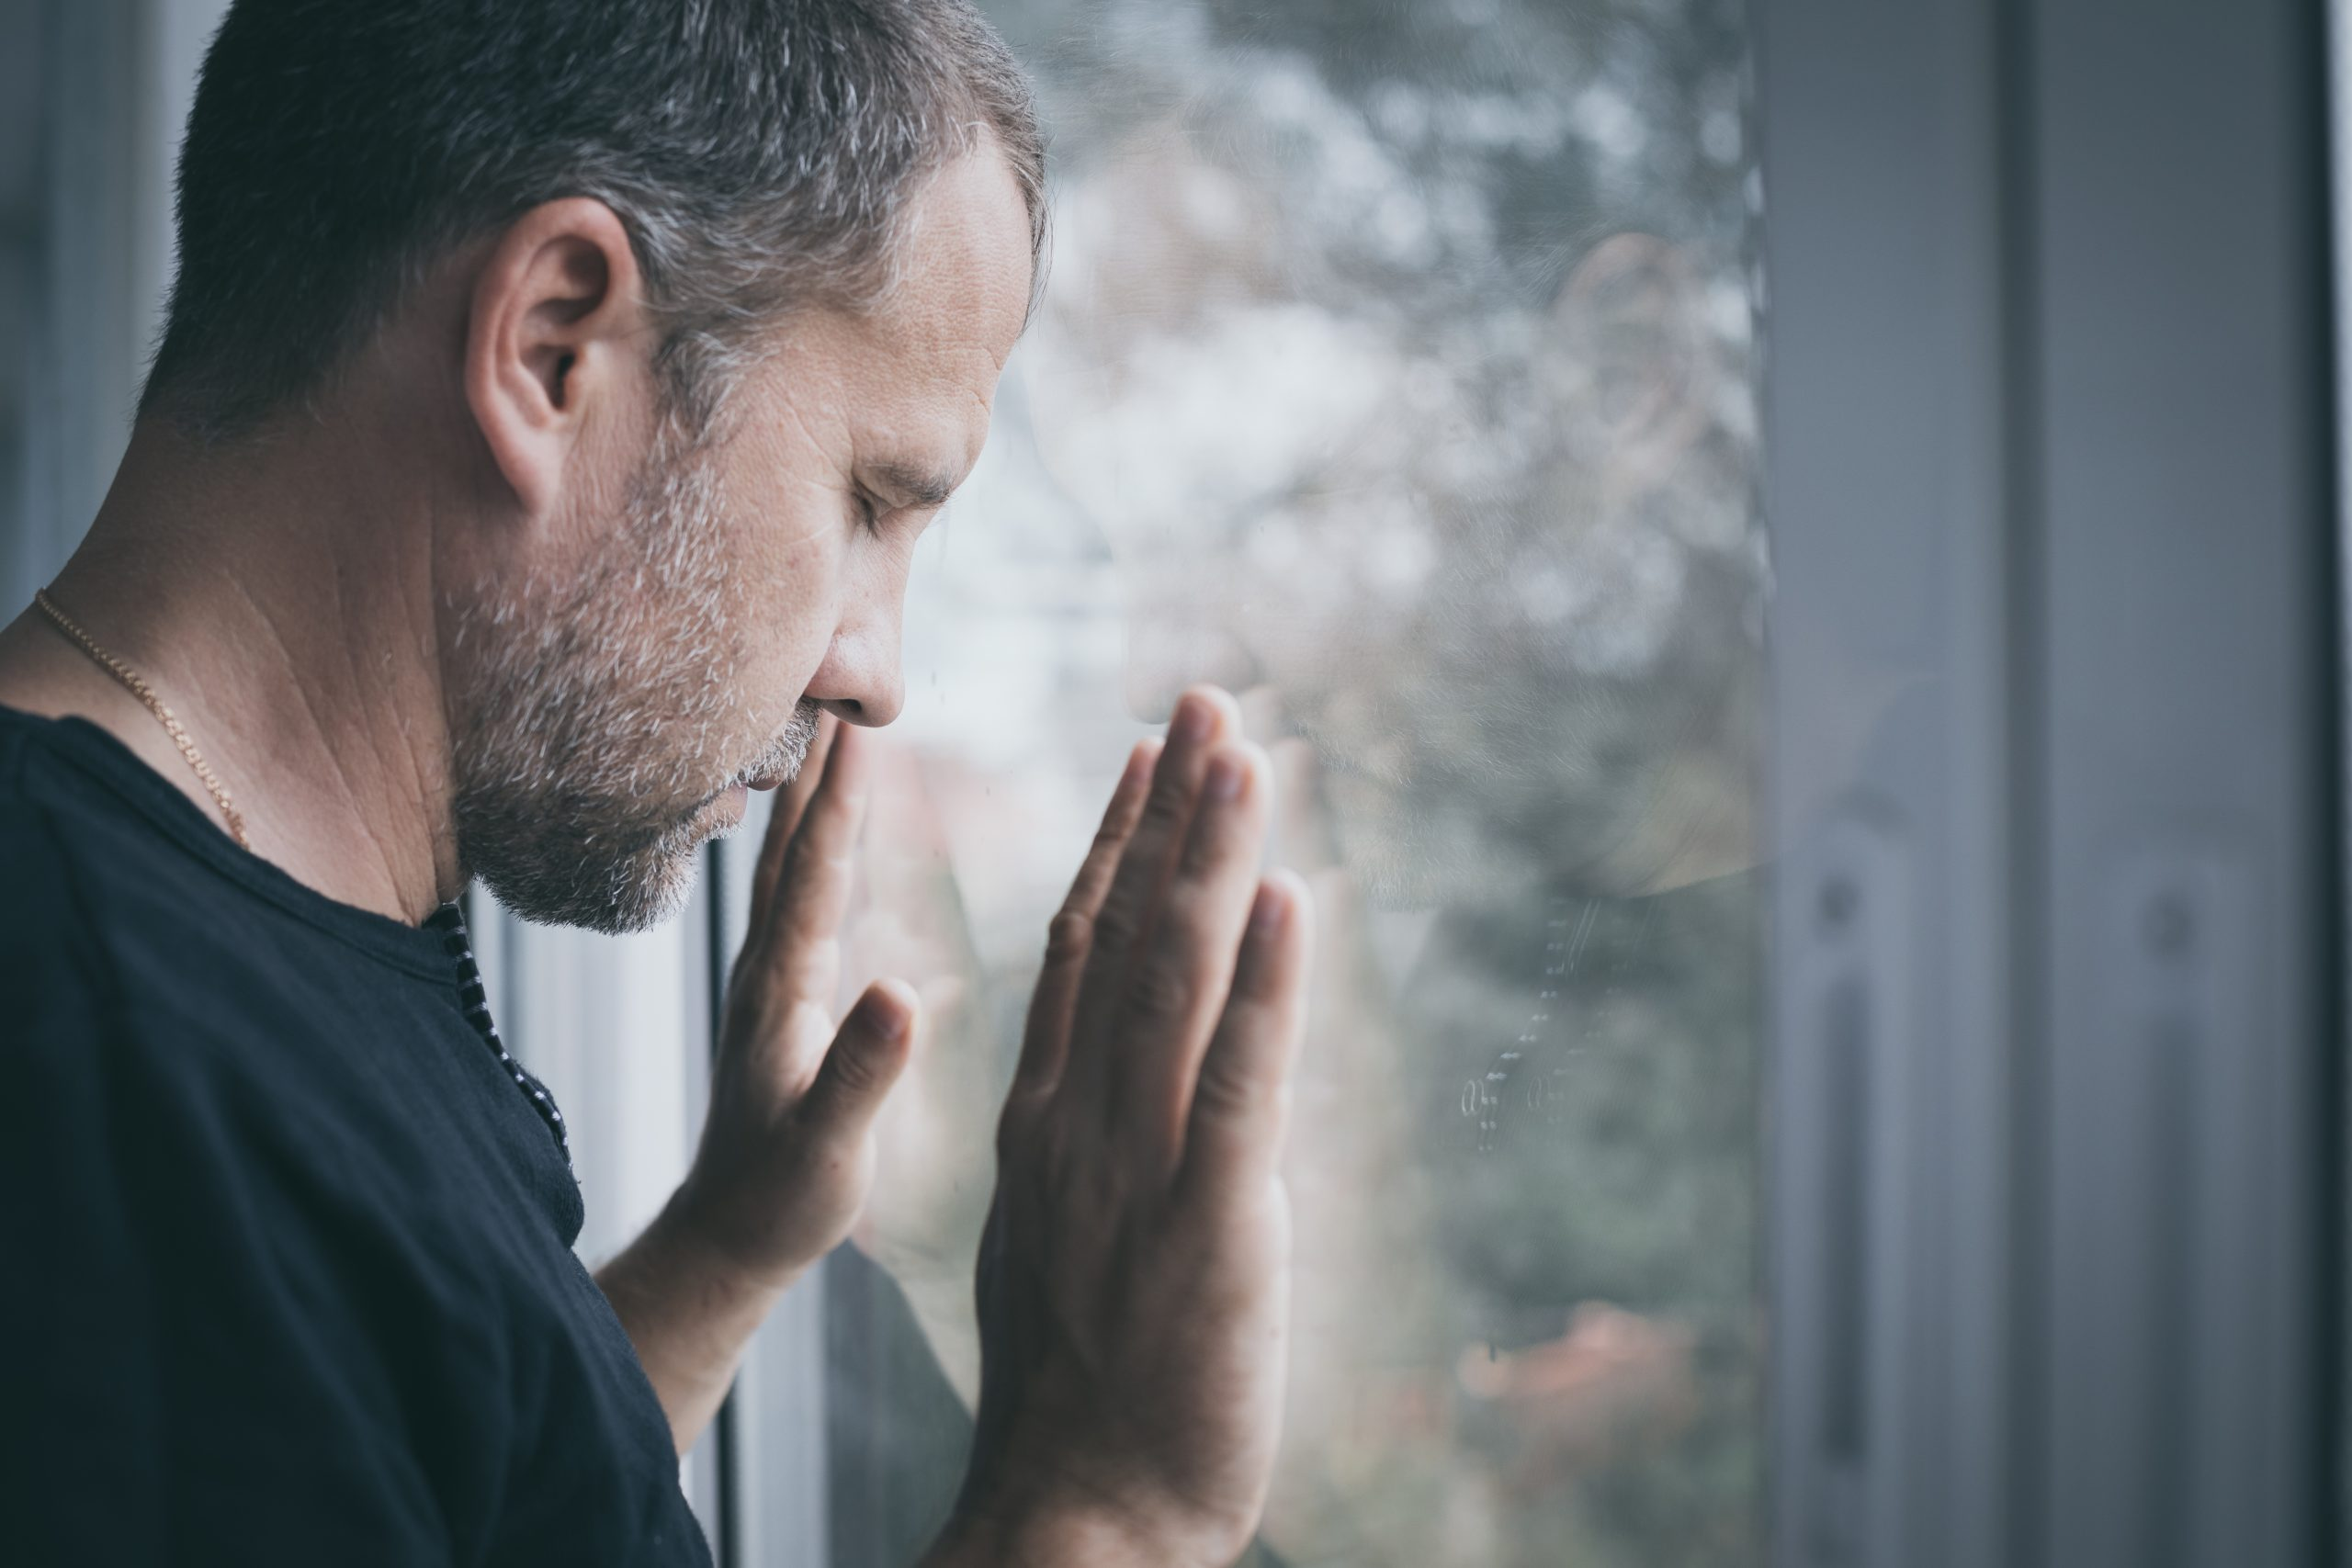 Man wih hands on window thinking about his fertility issues.